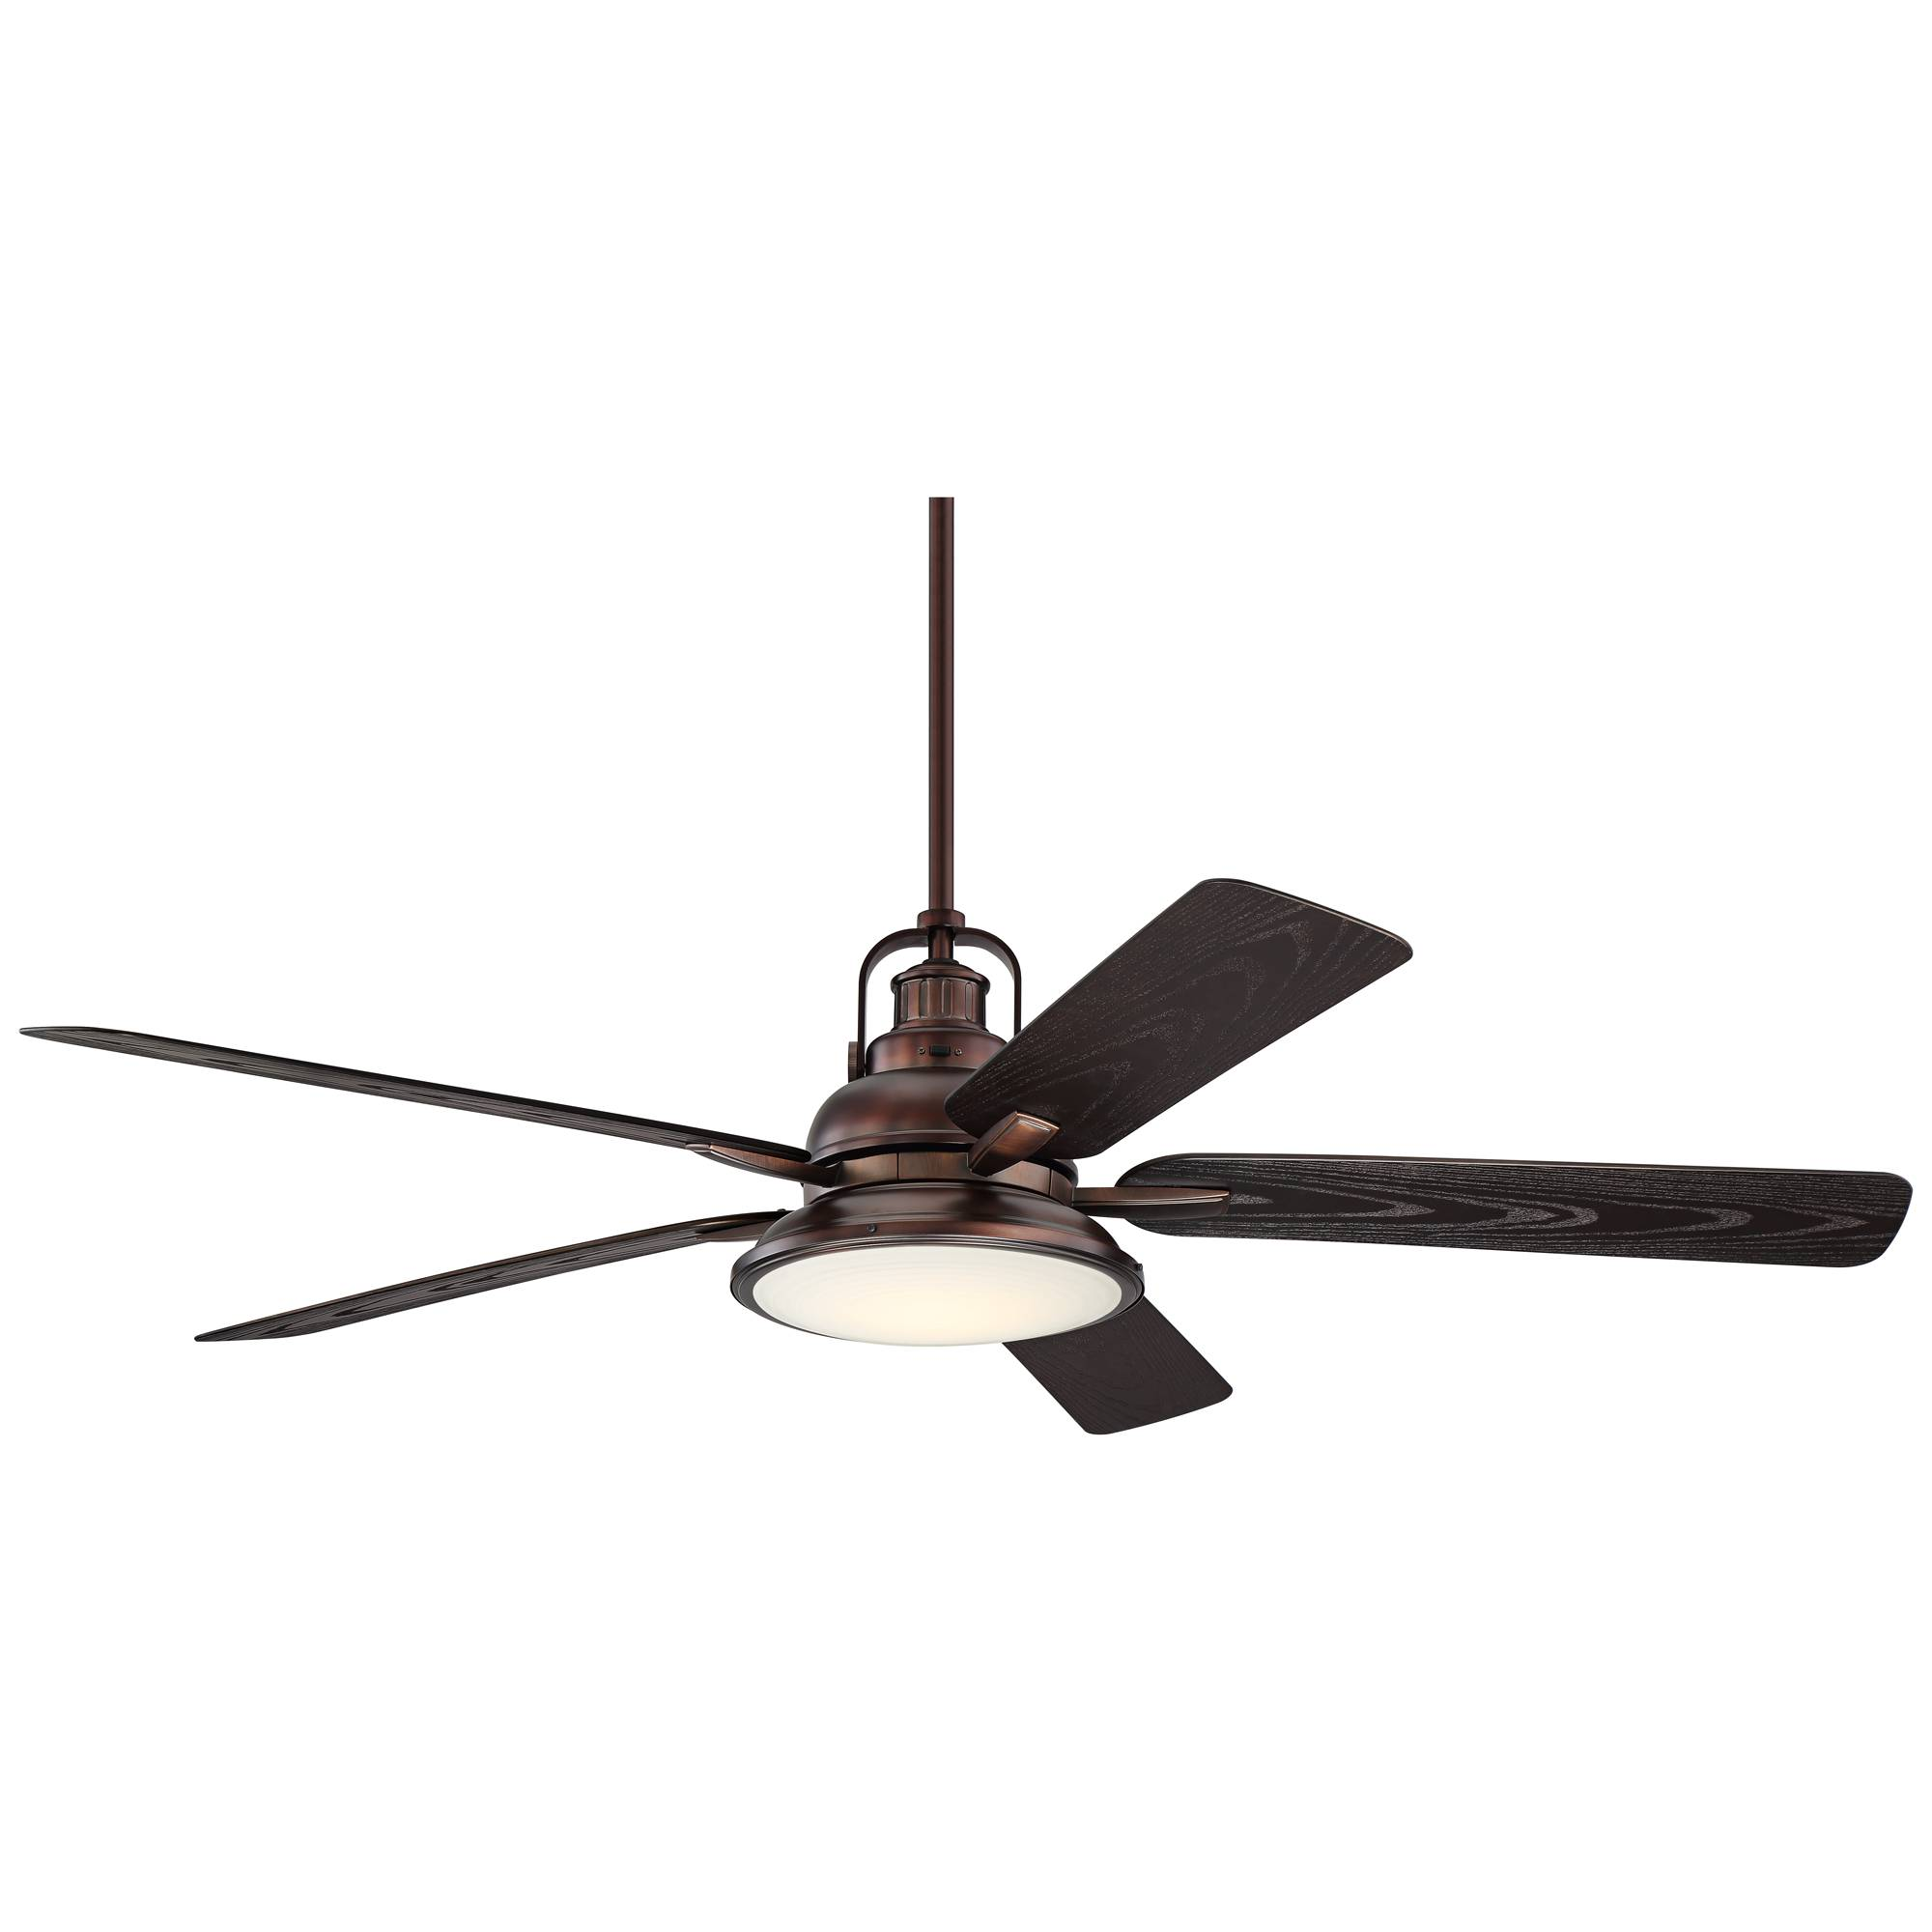 stunning troposair country within light lights rubbed titan rustic industrial fans fan western large bronze oil for with ceiling